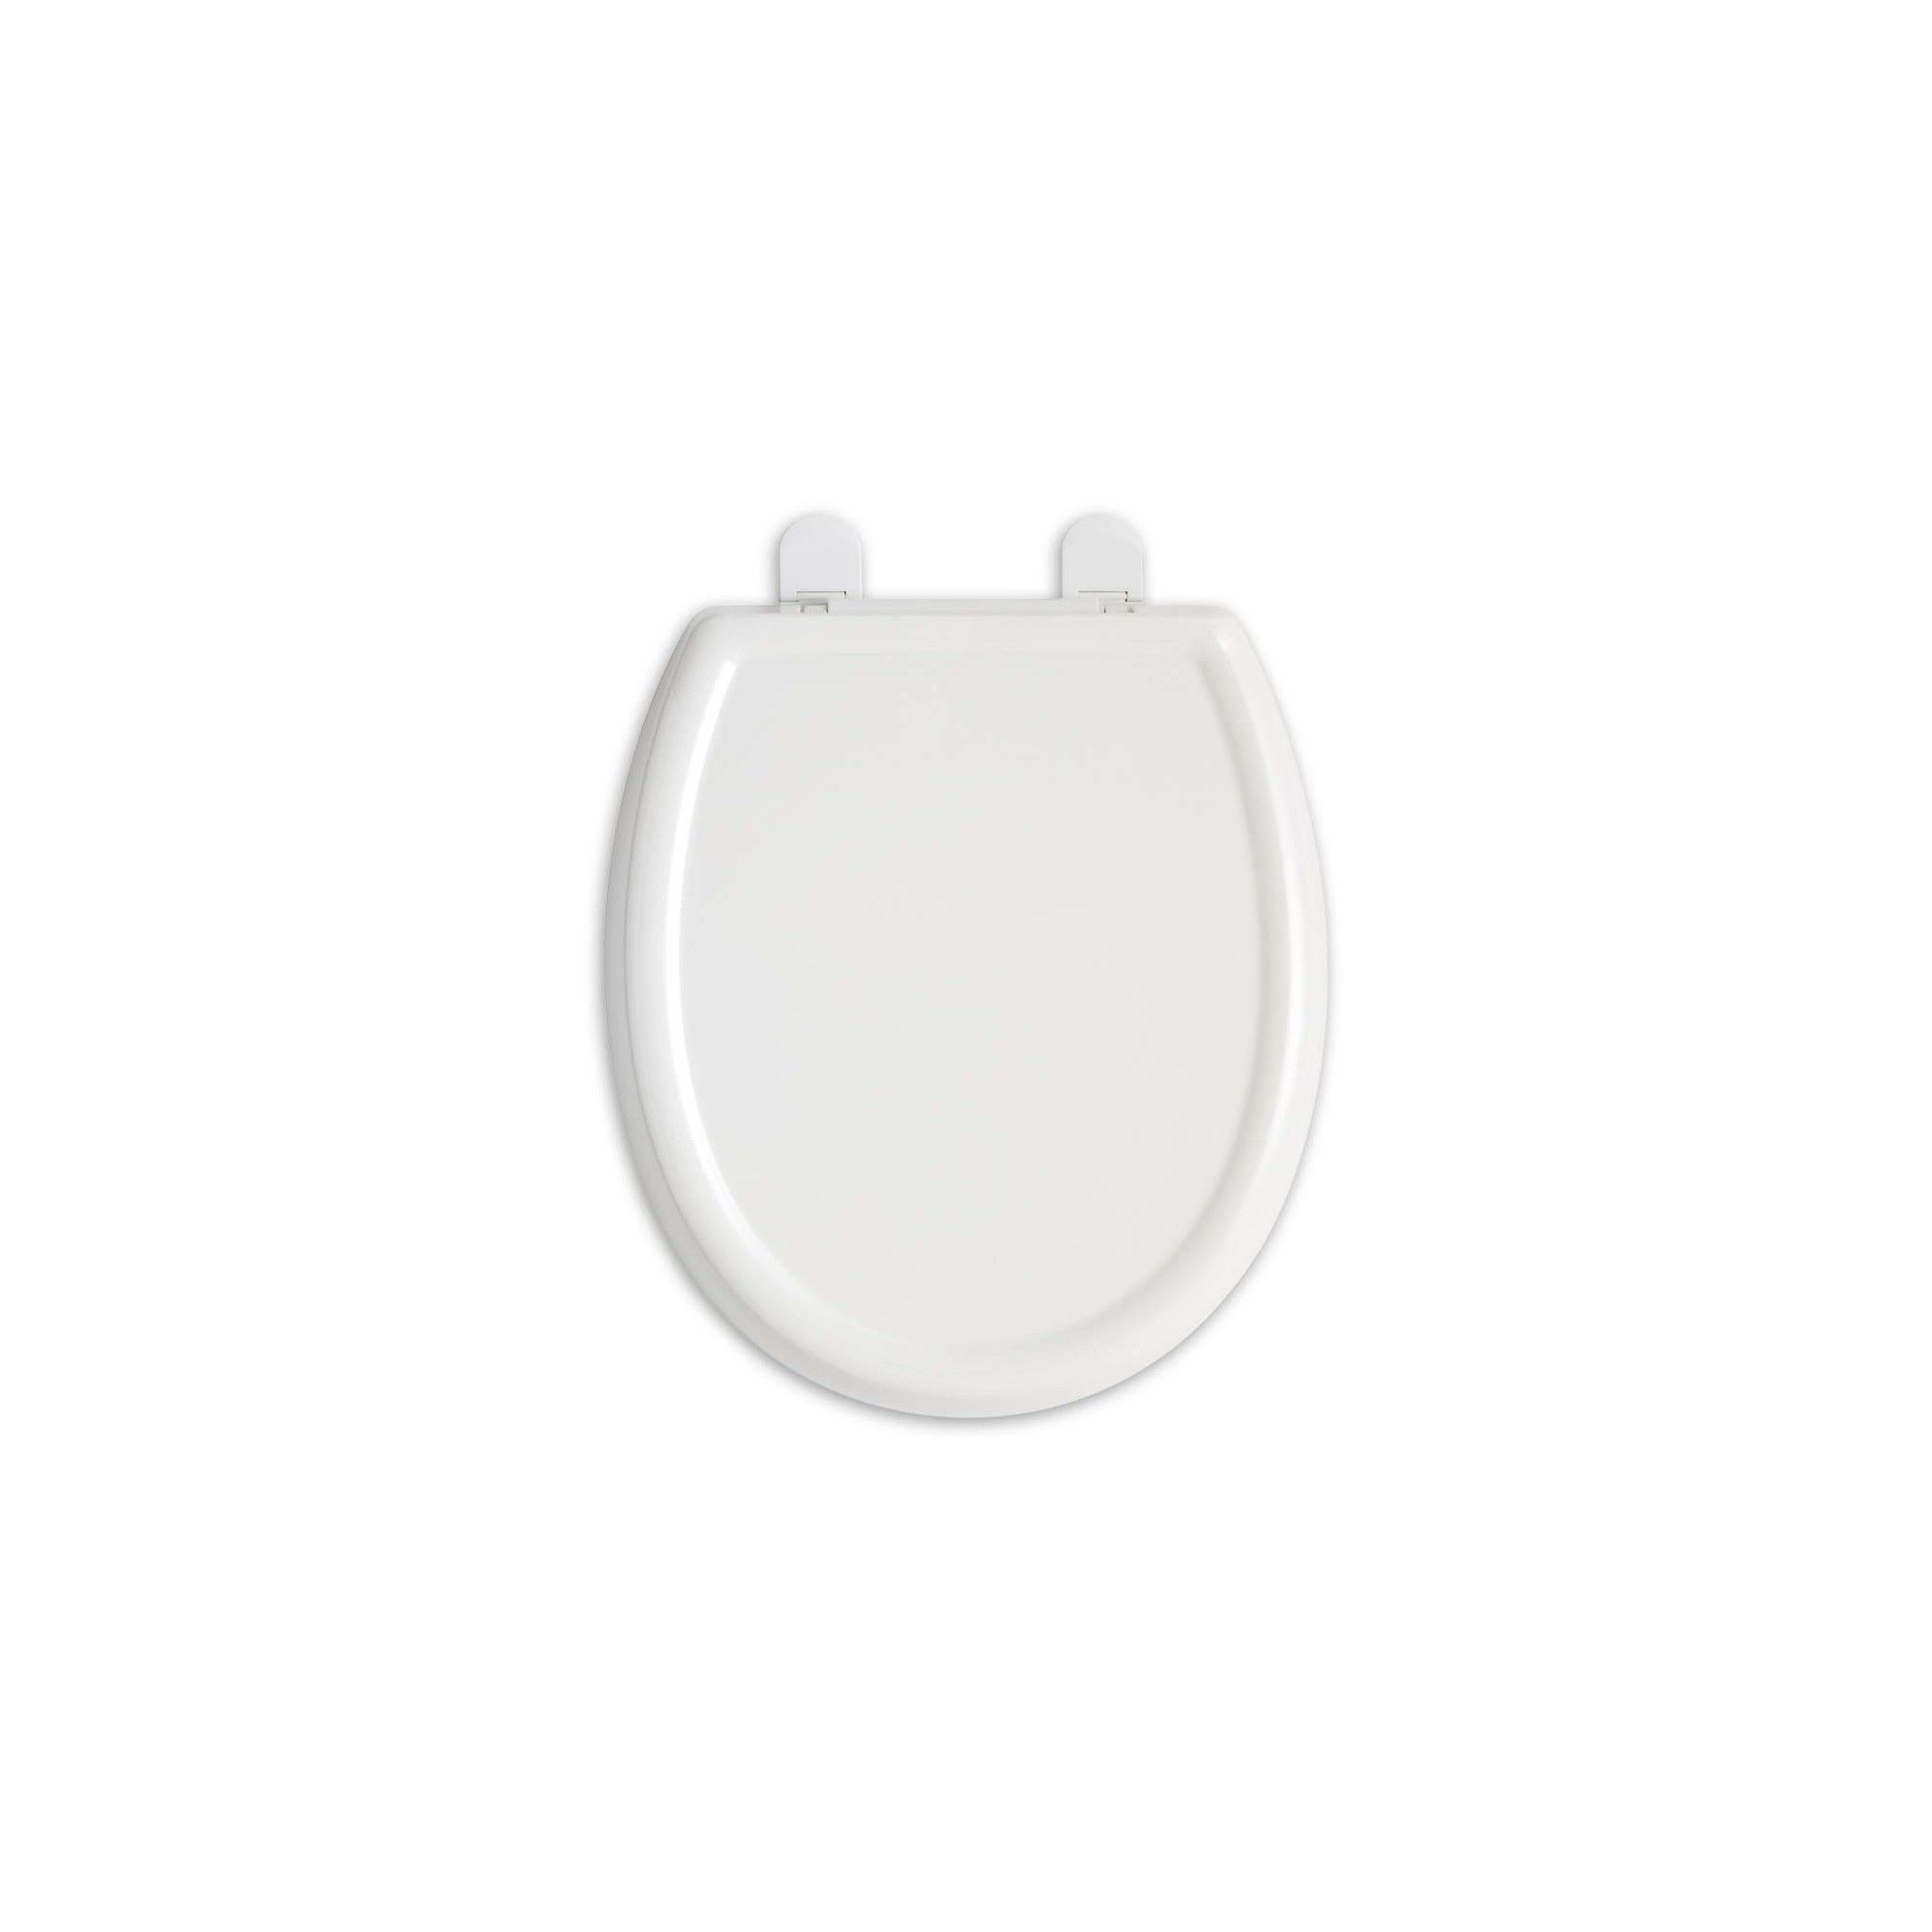 American Standard 5350 110 Cadet 3 Elongated Slow Close Toilet